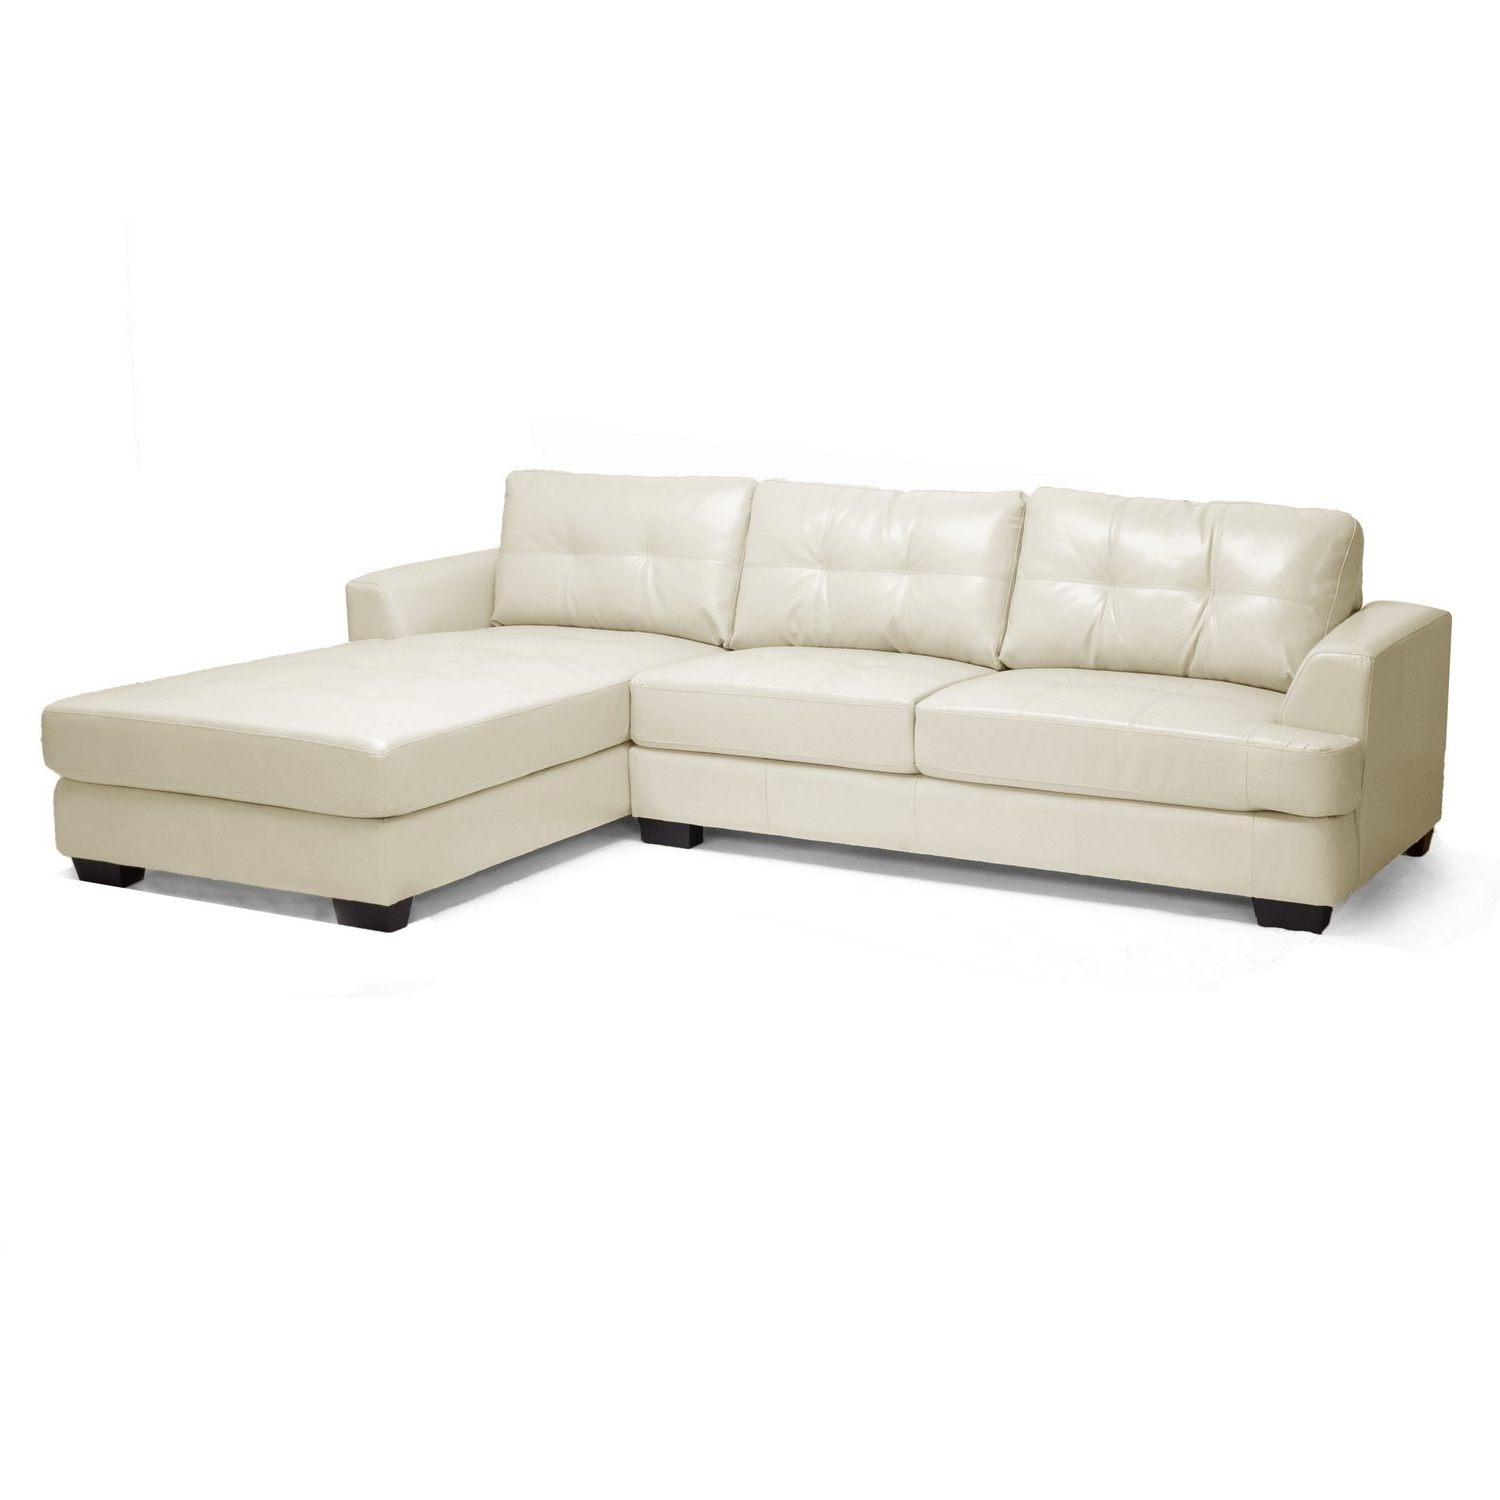 Well Known Leather Chaise Sofas With Amazon: Baxton Studio Dobson Leather Modern Sectional Sofa (View 13 of 15)